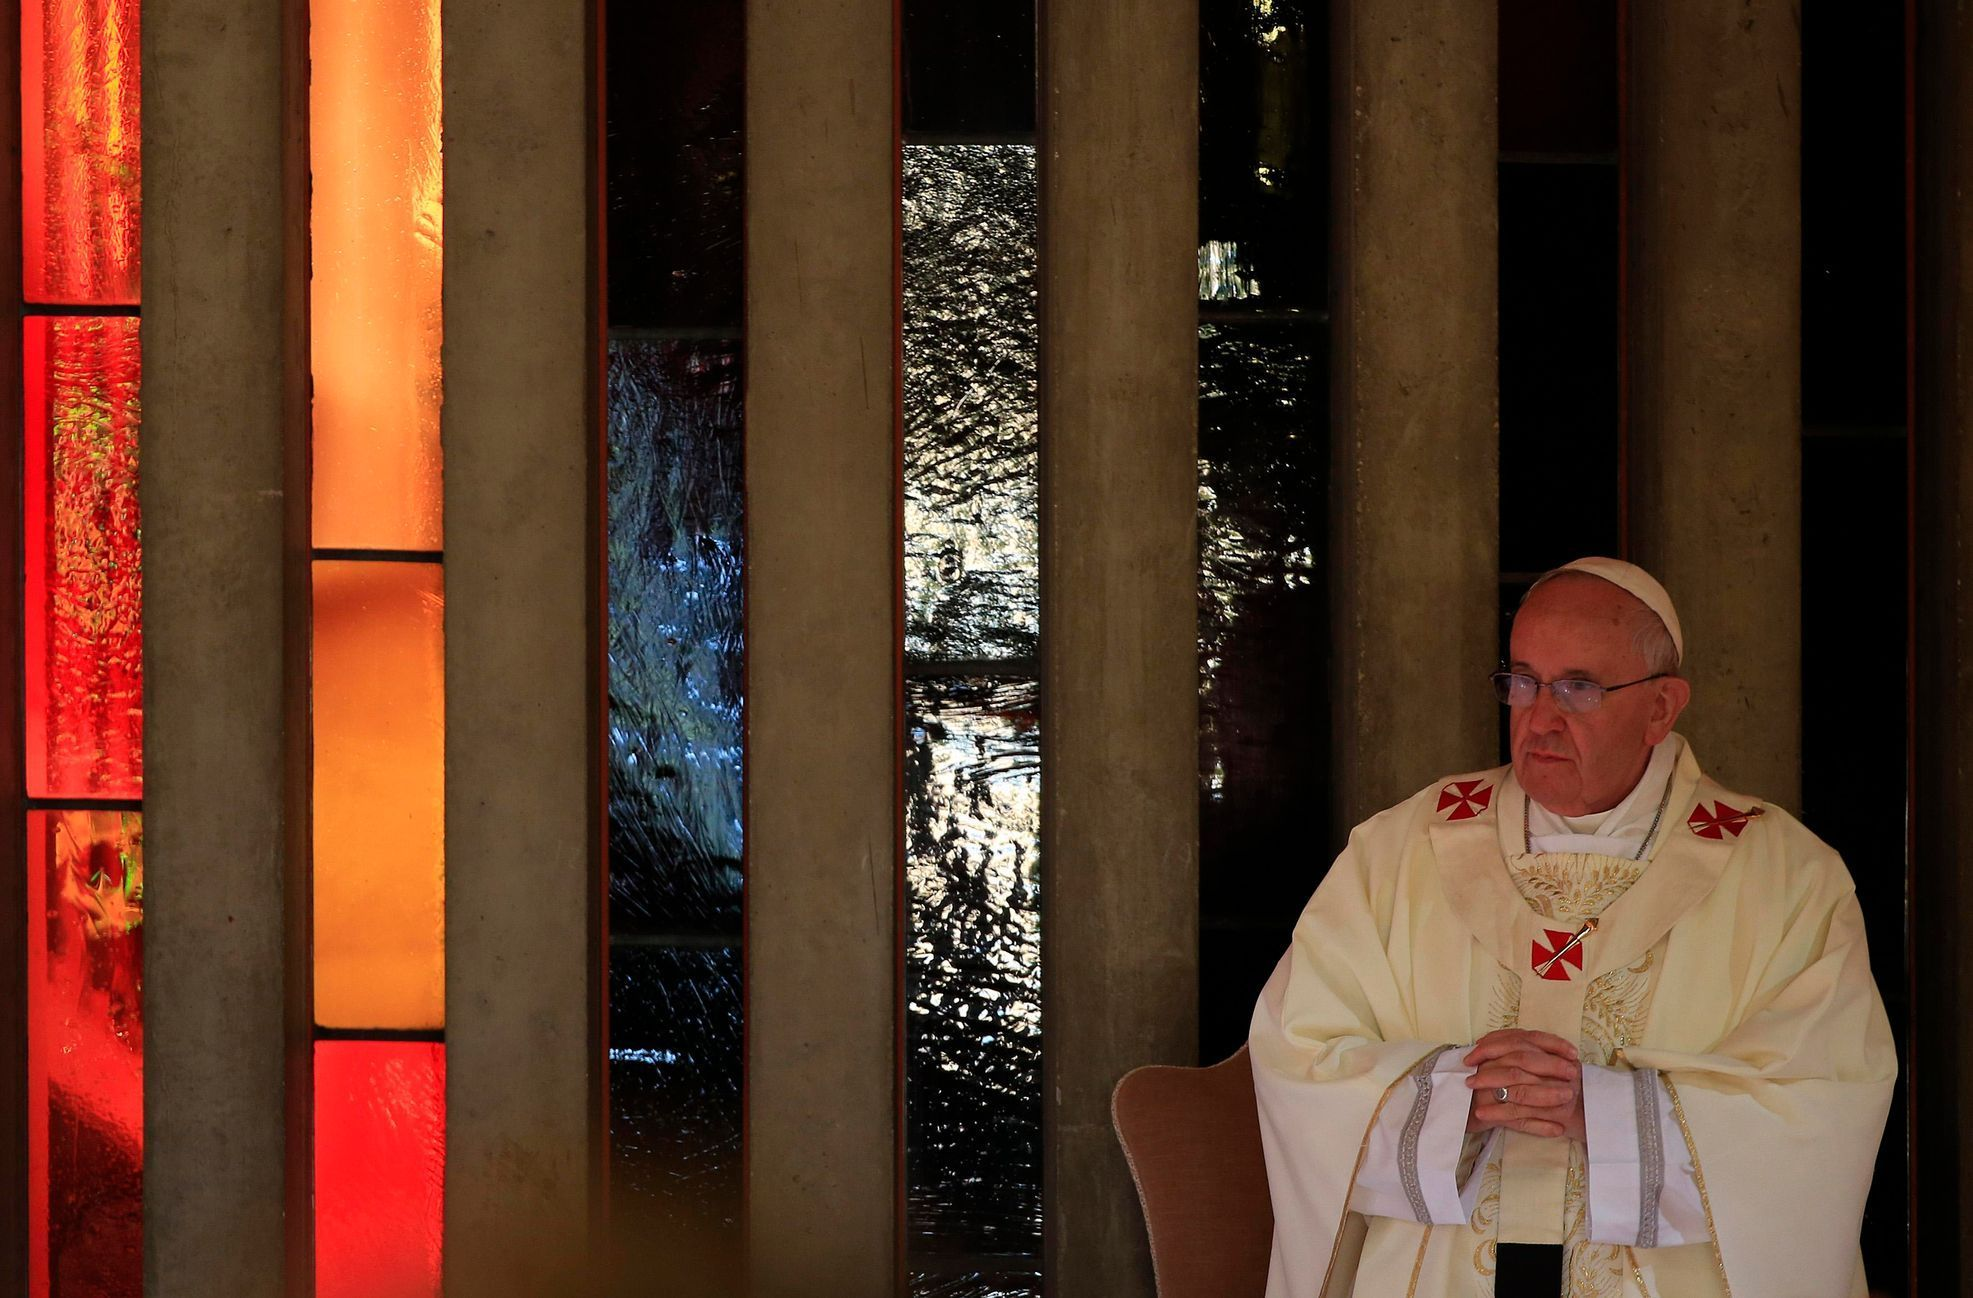 Pope Francis attends a mass at the S. Maria della Provvidenza church in Rome